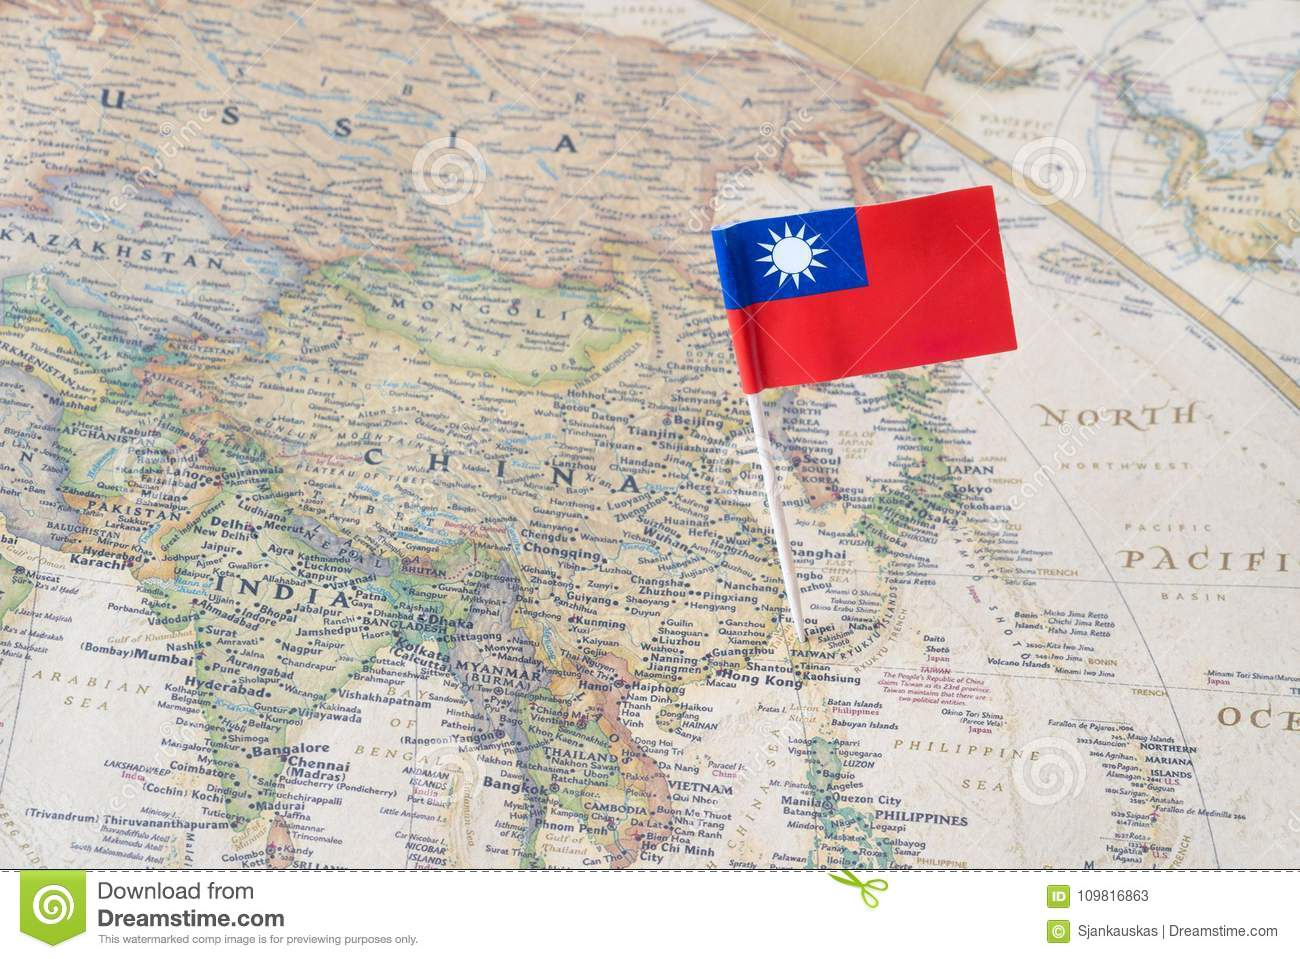 Taiwan map and flag pin